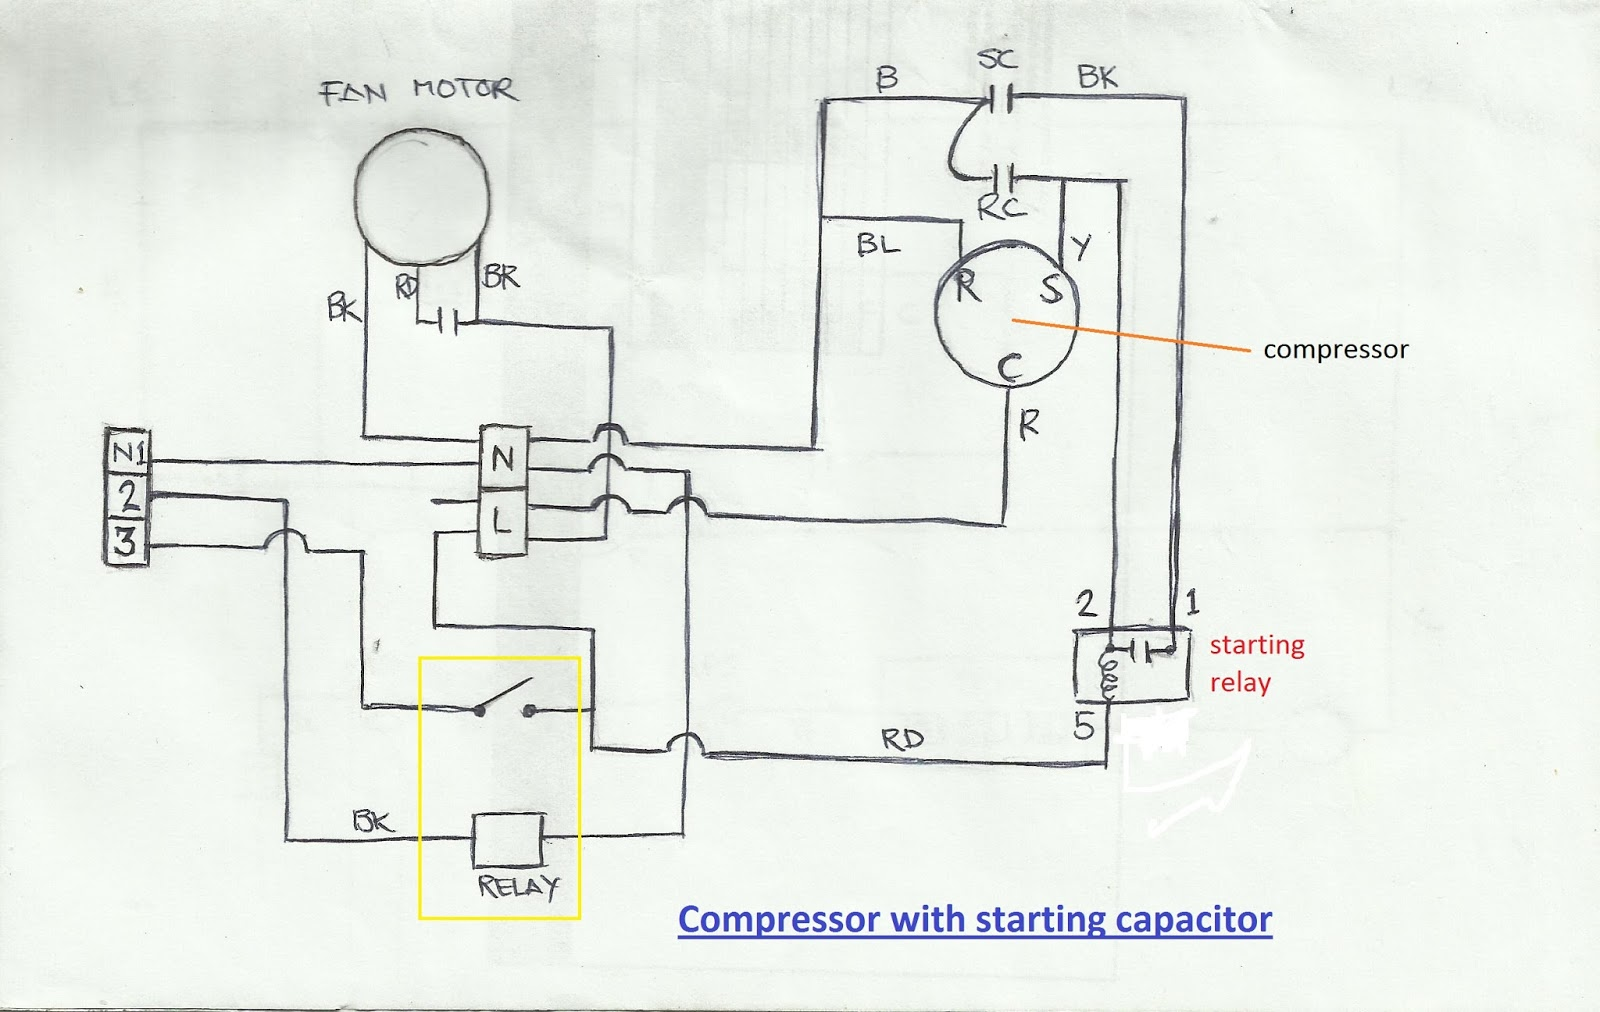 18 refrigeration and air conditioning repair wiring diagram of wiring diagram for air conditioner at gsmx.co